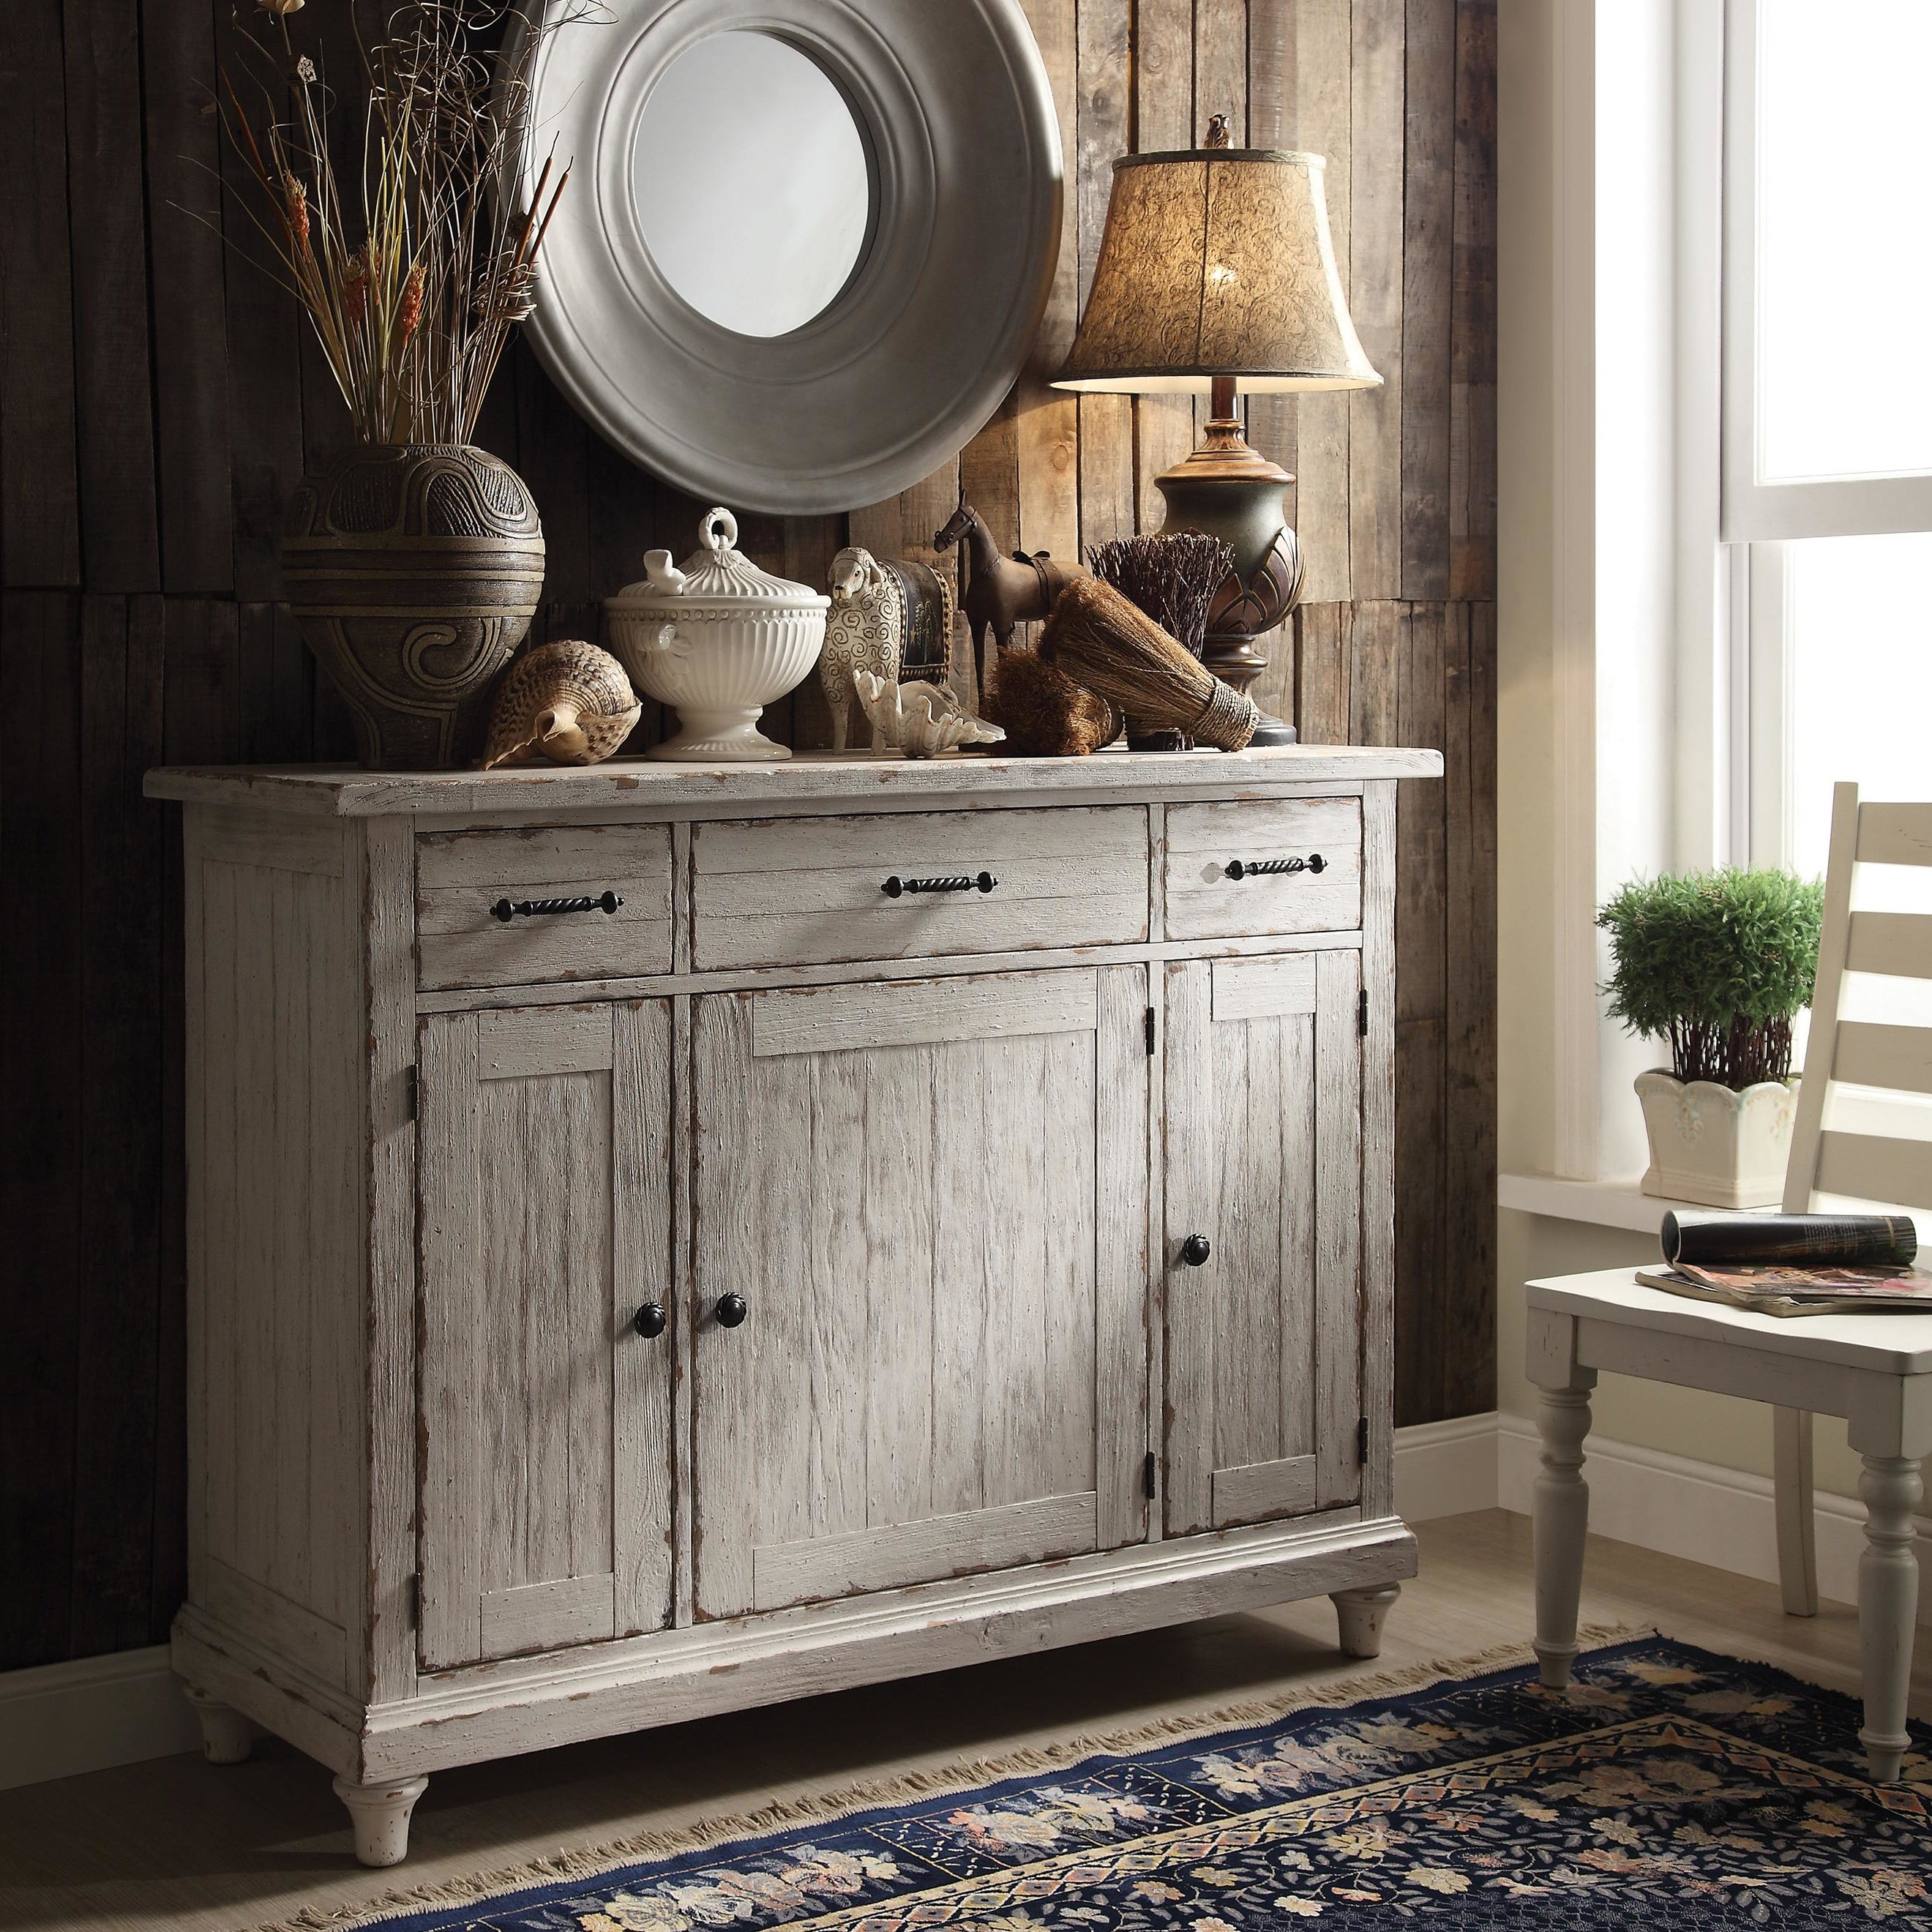 Farmhouse & Rustic Lark Manor Sideboards & Buffets | Birch Lane With Newest Ilyan Traditional Wood Sideboards (#7 of 20)